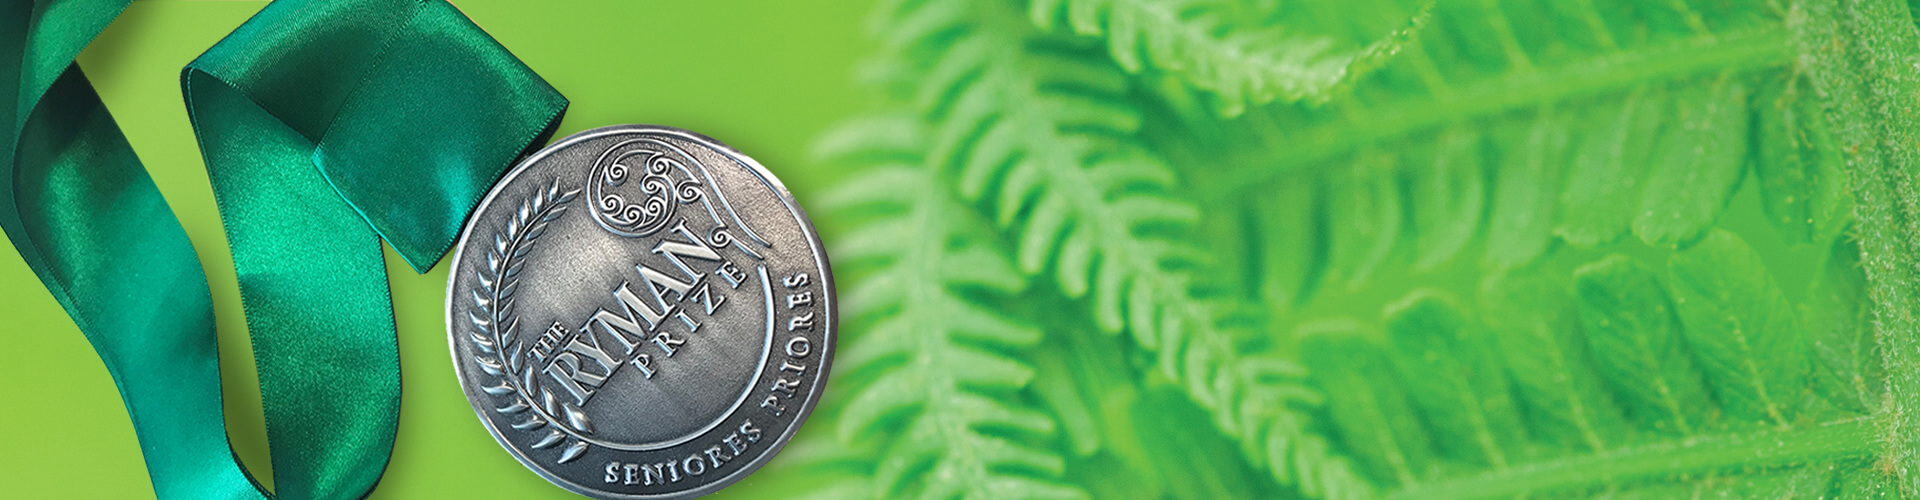 fern-medal-65687896-1920x500-top-hero